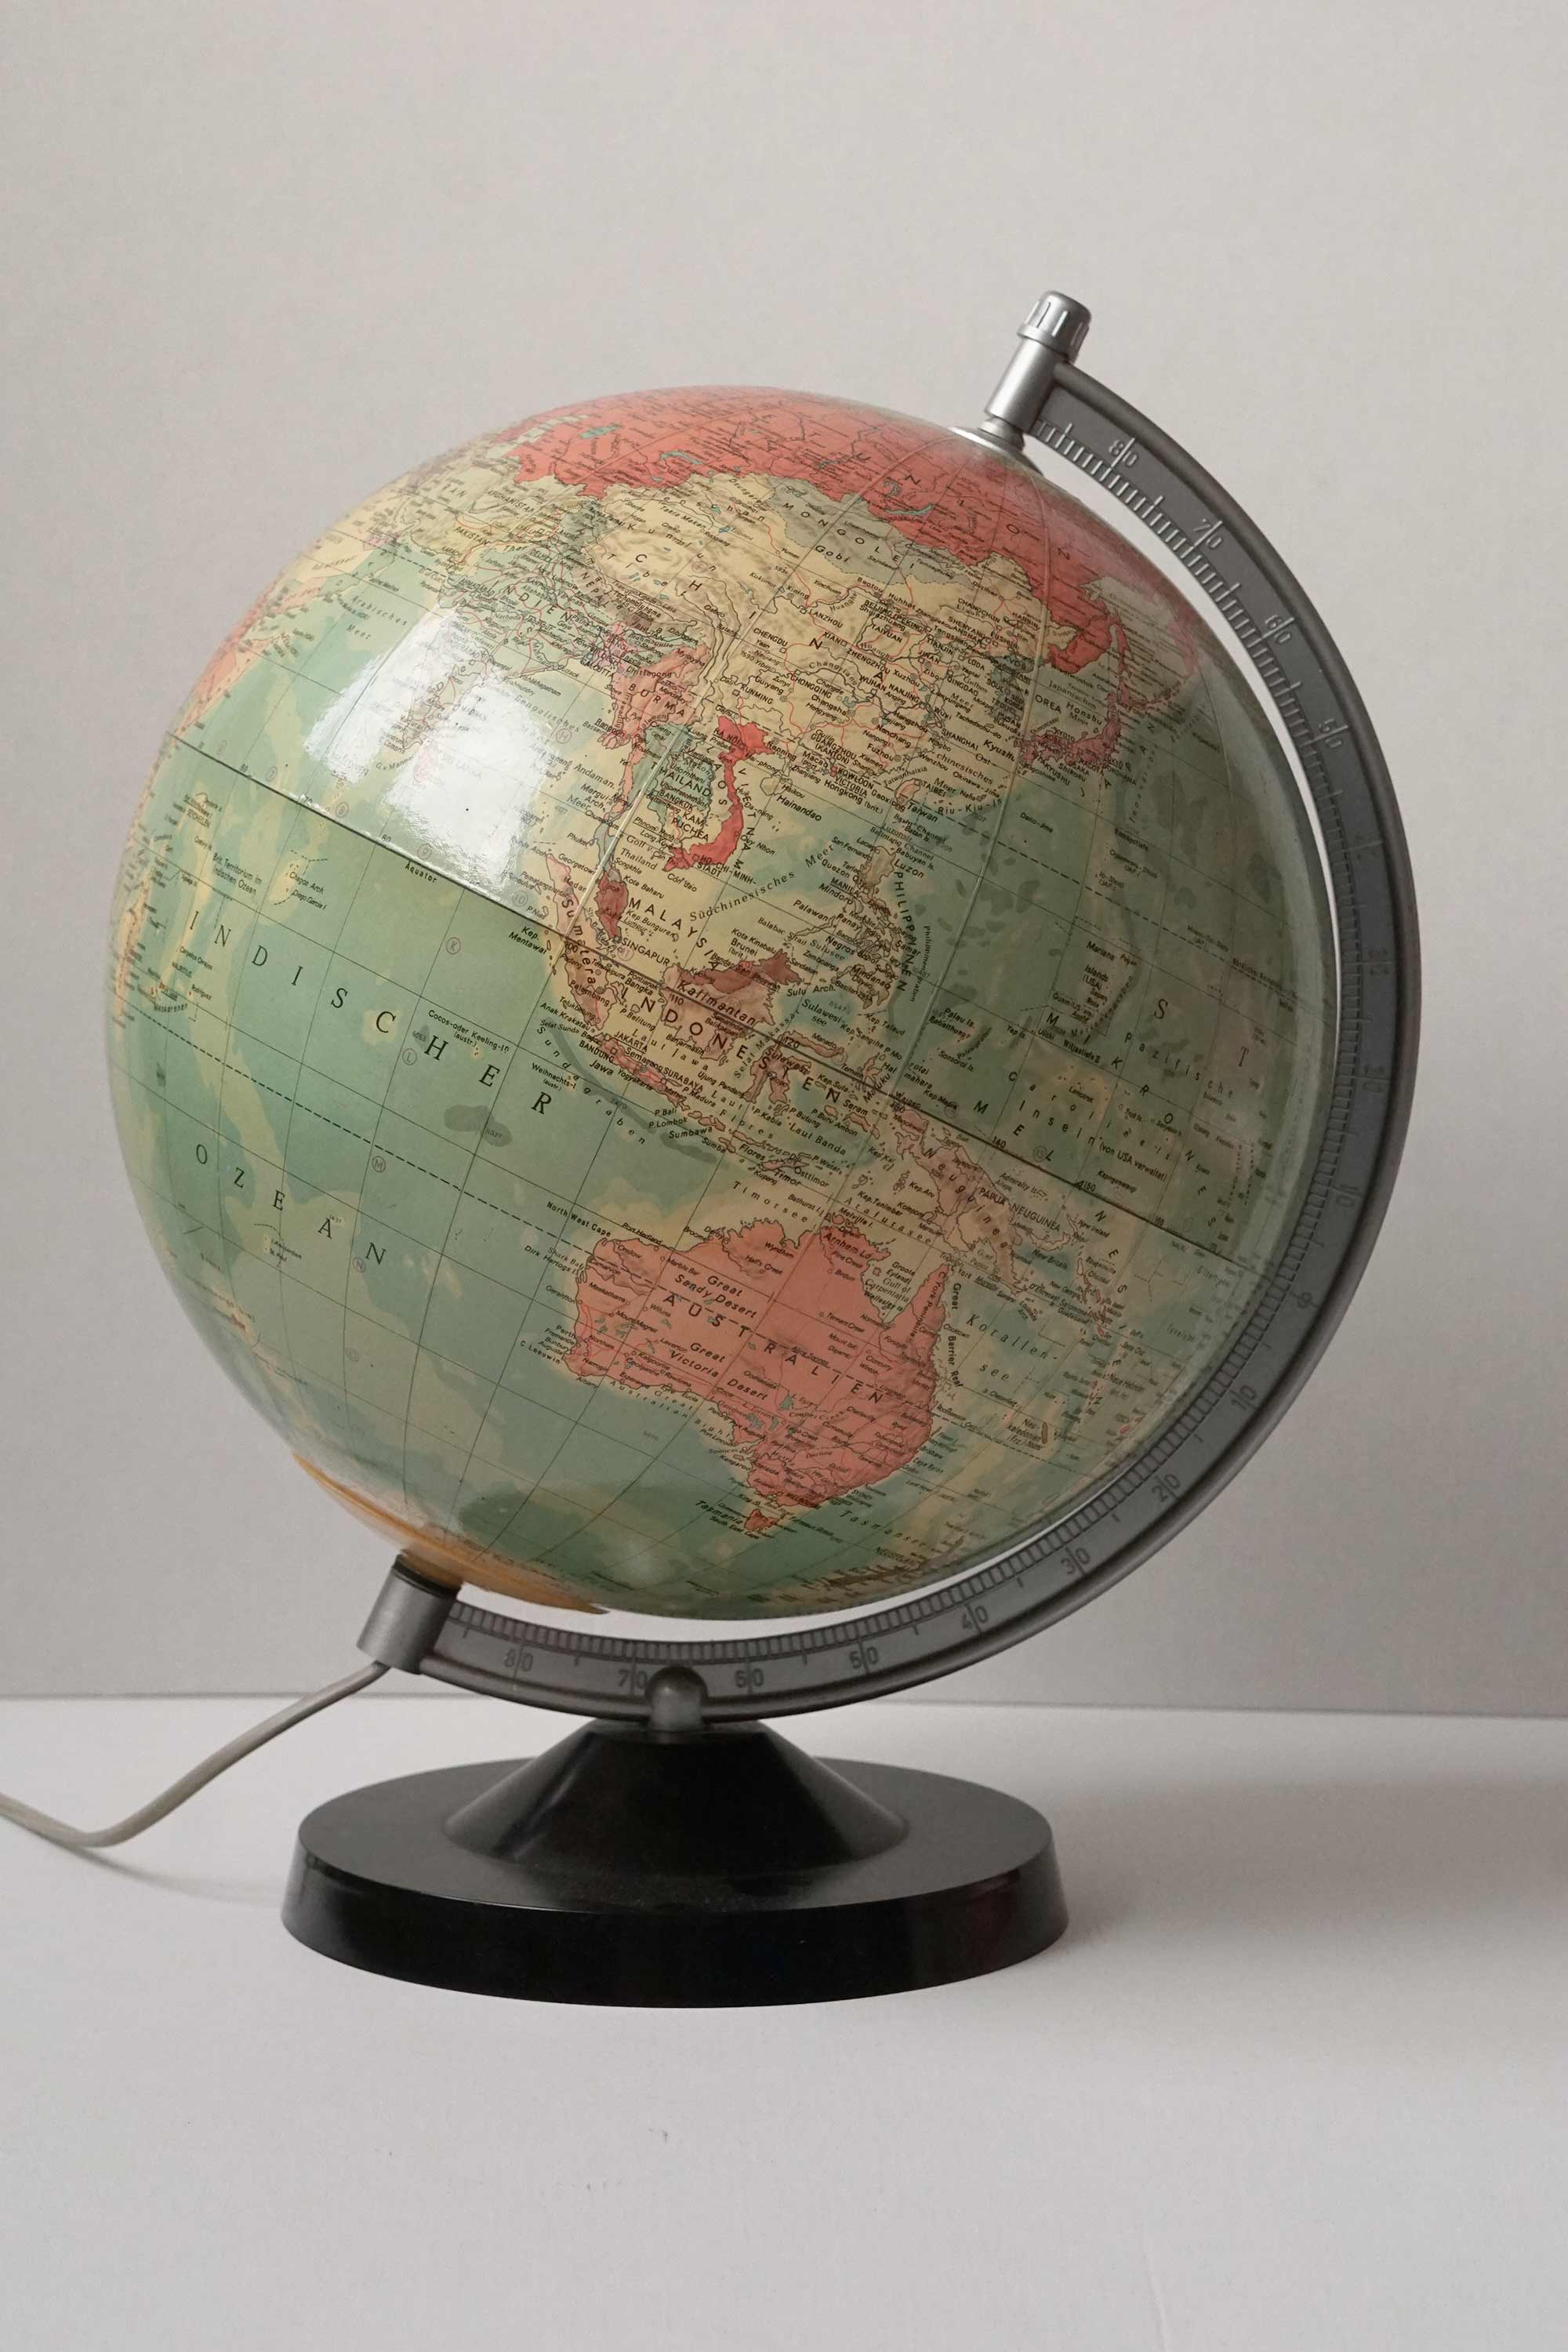 German Political Light Globe from Cold War Era